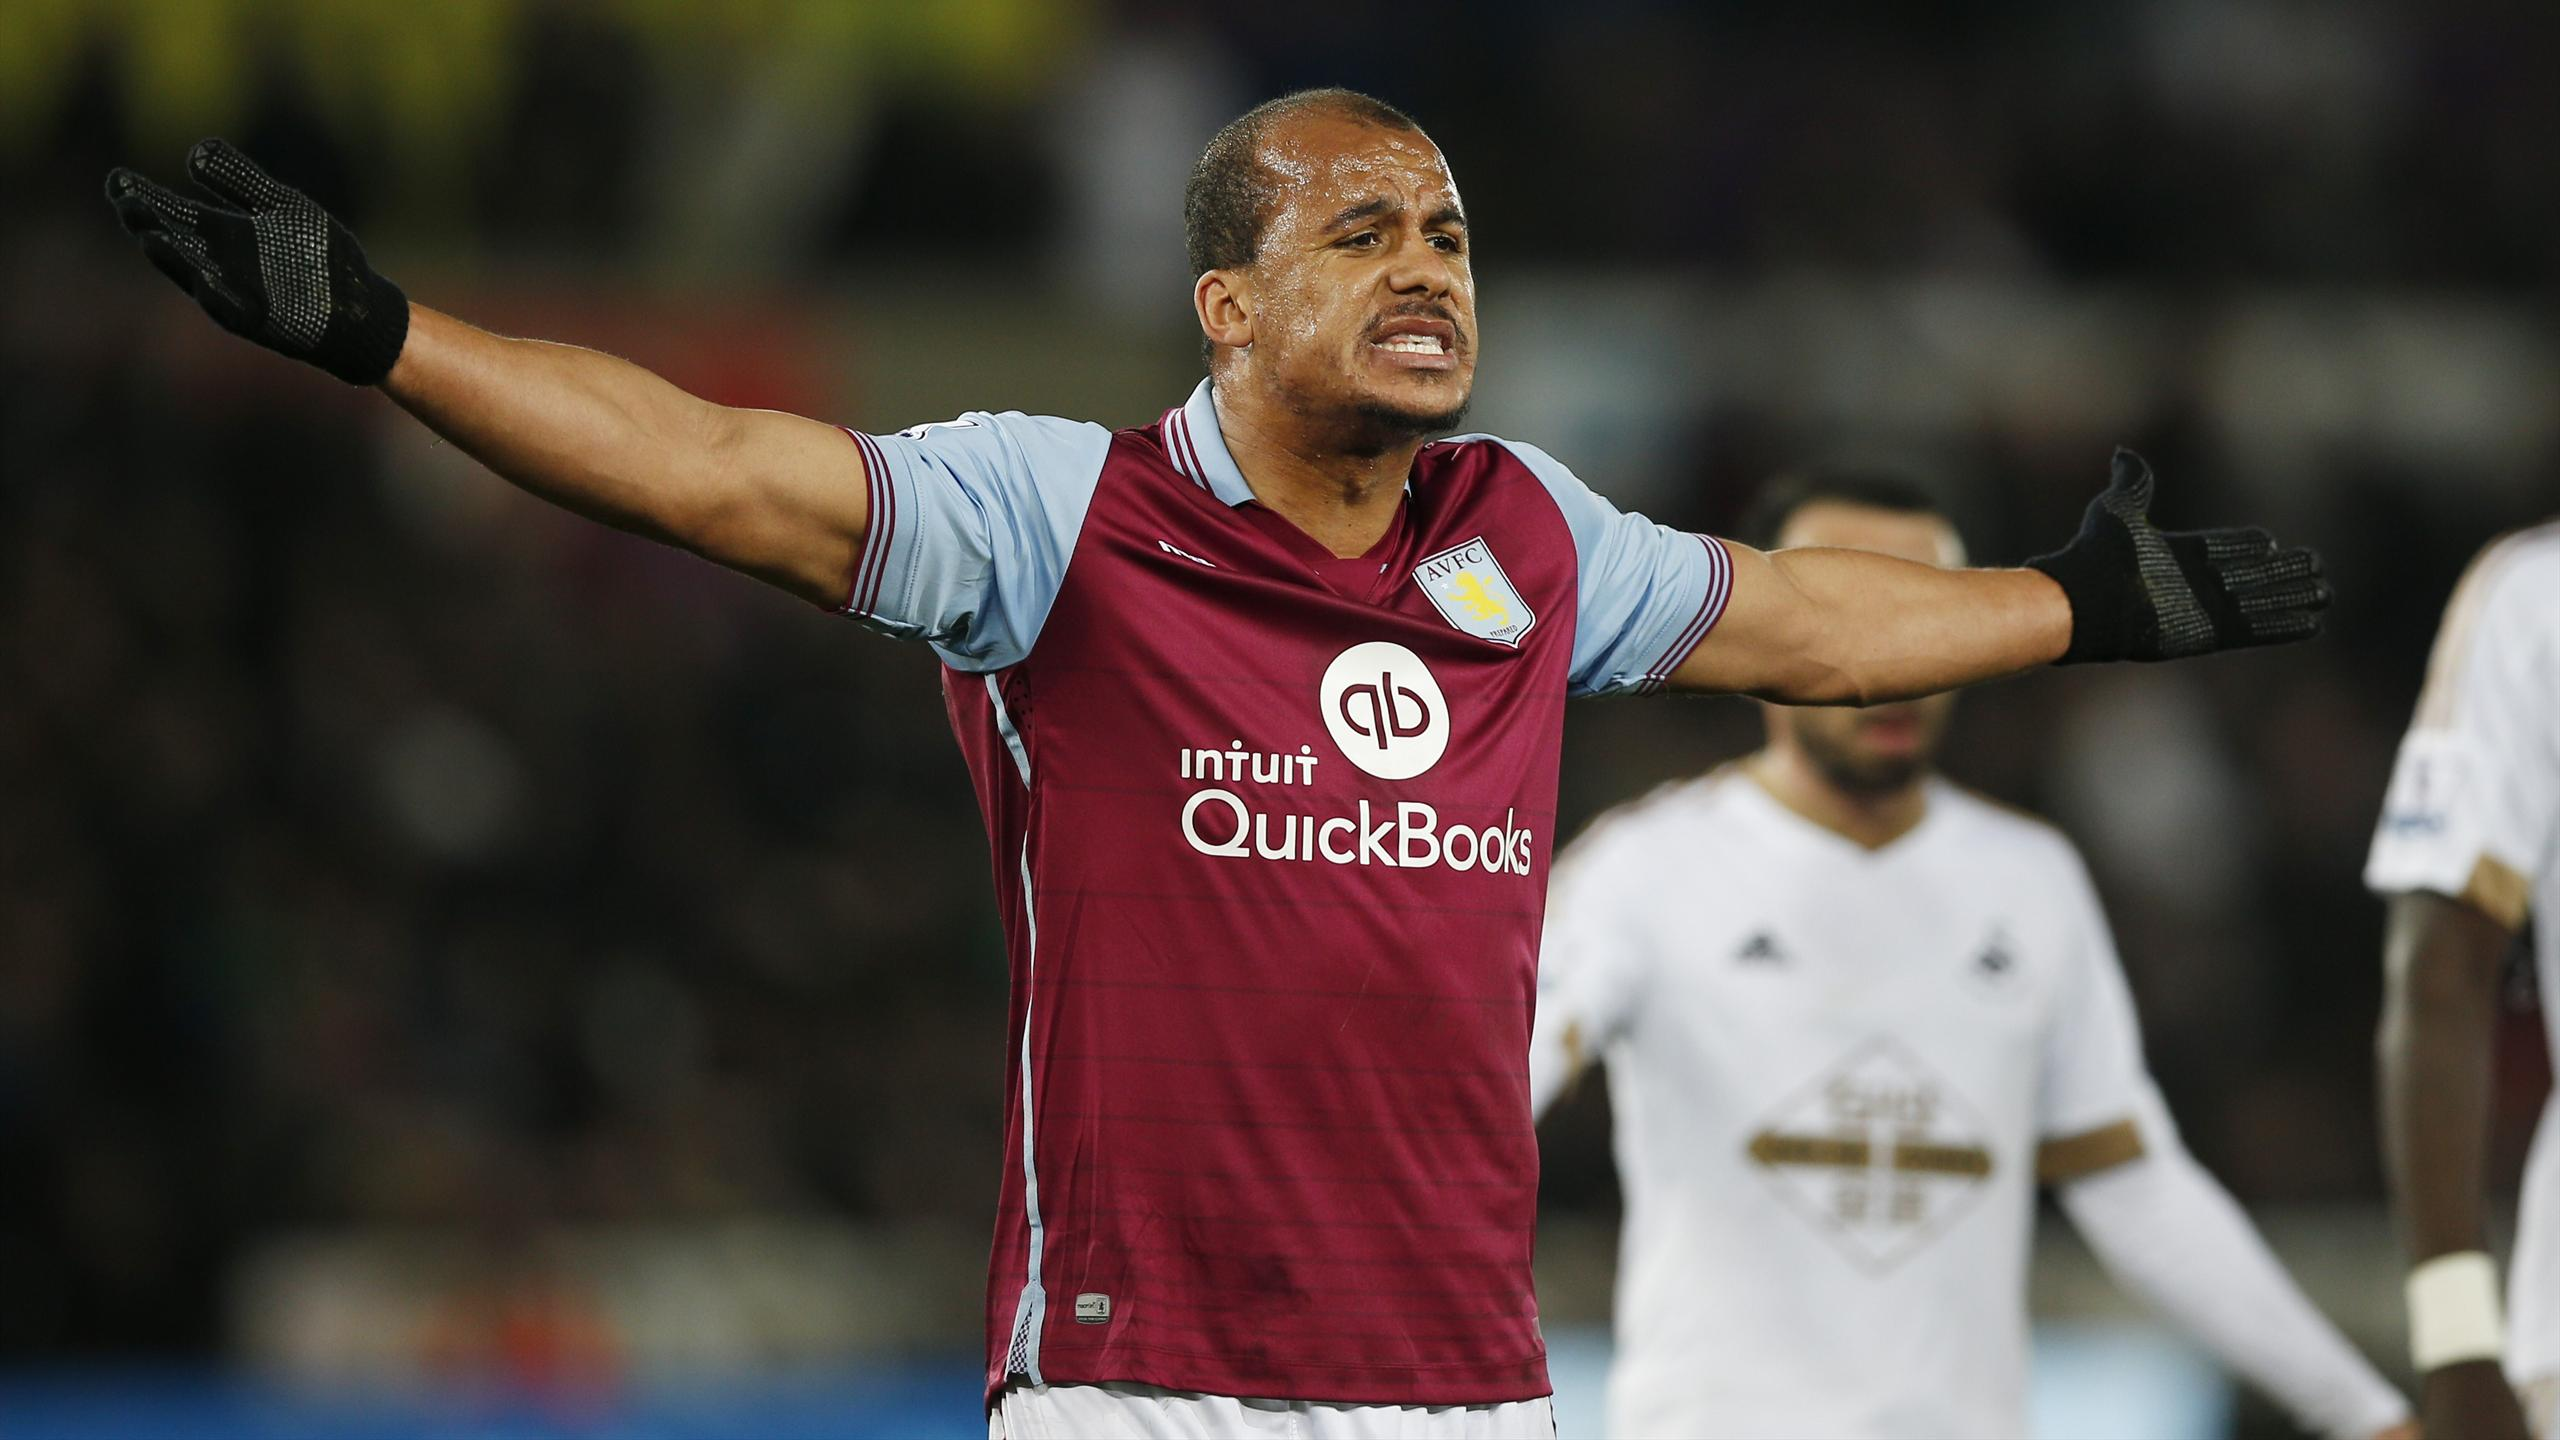 Gabriel Agbonlahor of Aston Villa reacts to a decision